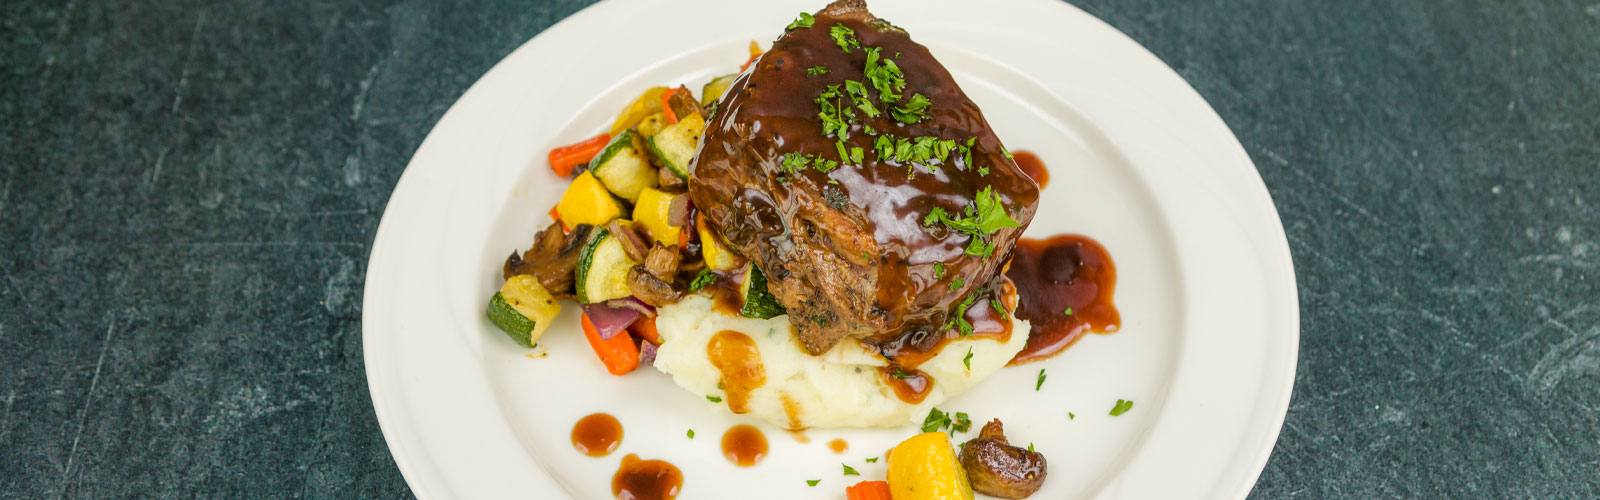 Braised Short Rib, Mashed Potatoes, and root vegetable medley